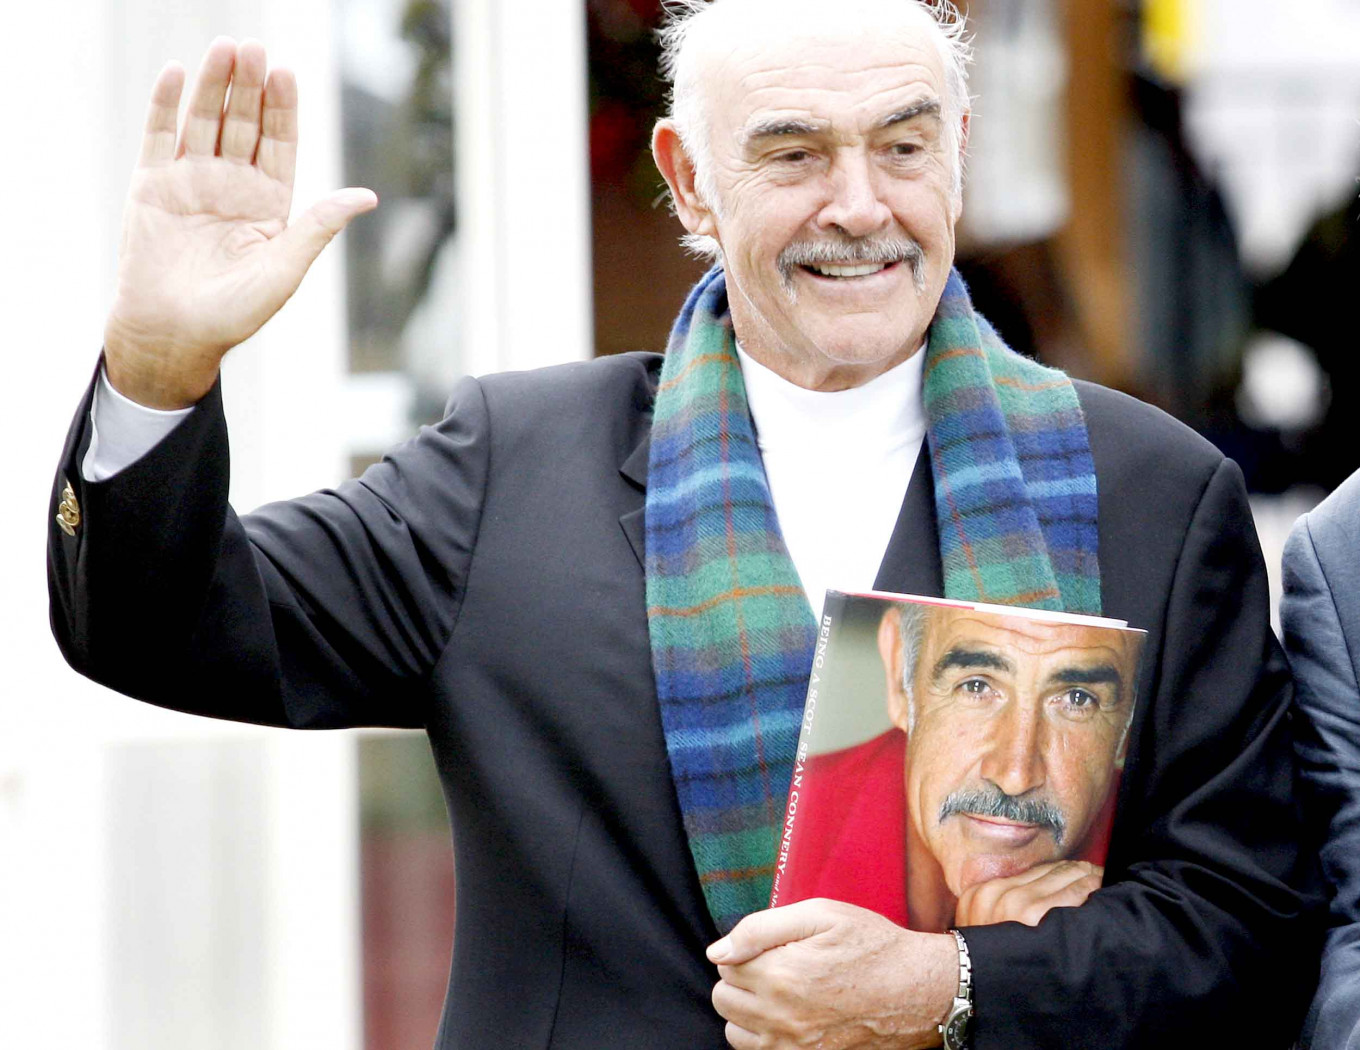 Sean Connery, film superstar who defined Bond role